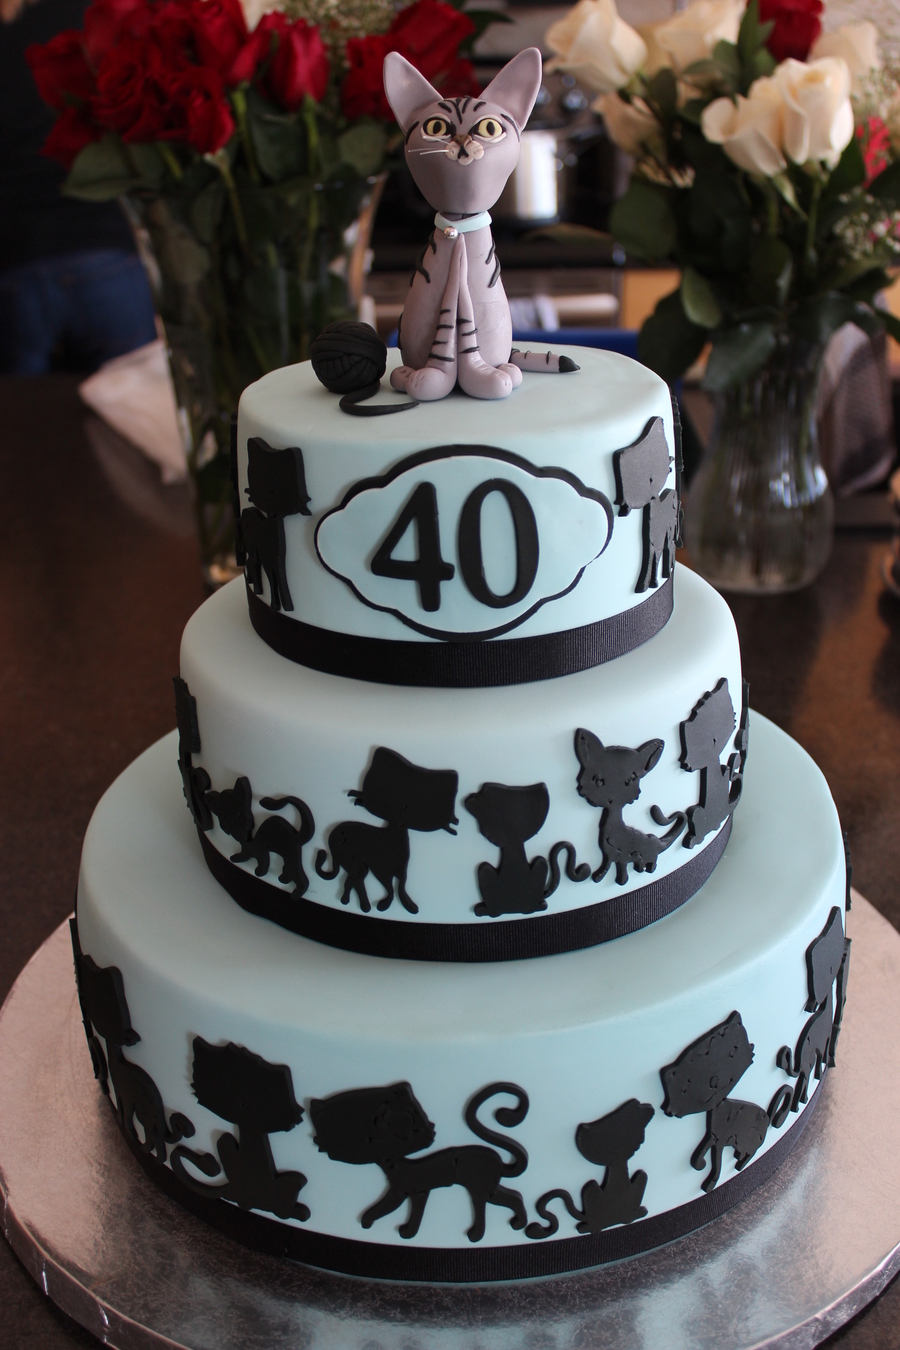 40th Birthday Cake Client Requested That The Cake Have 40